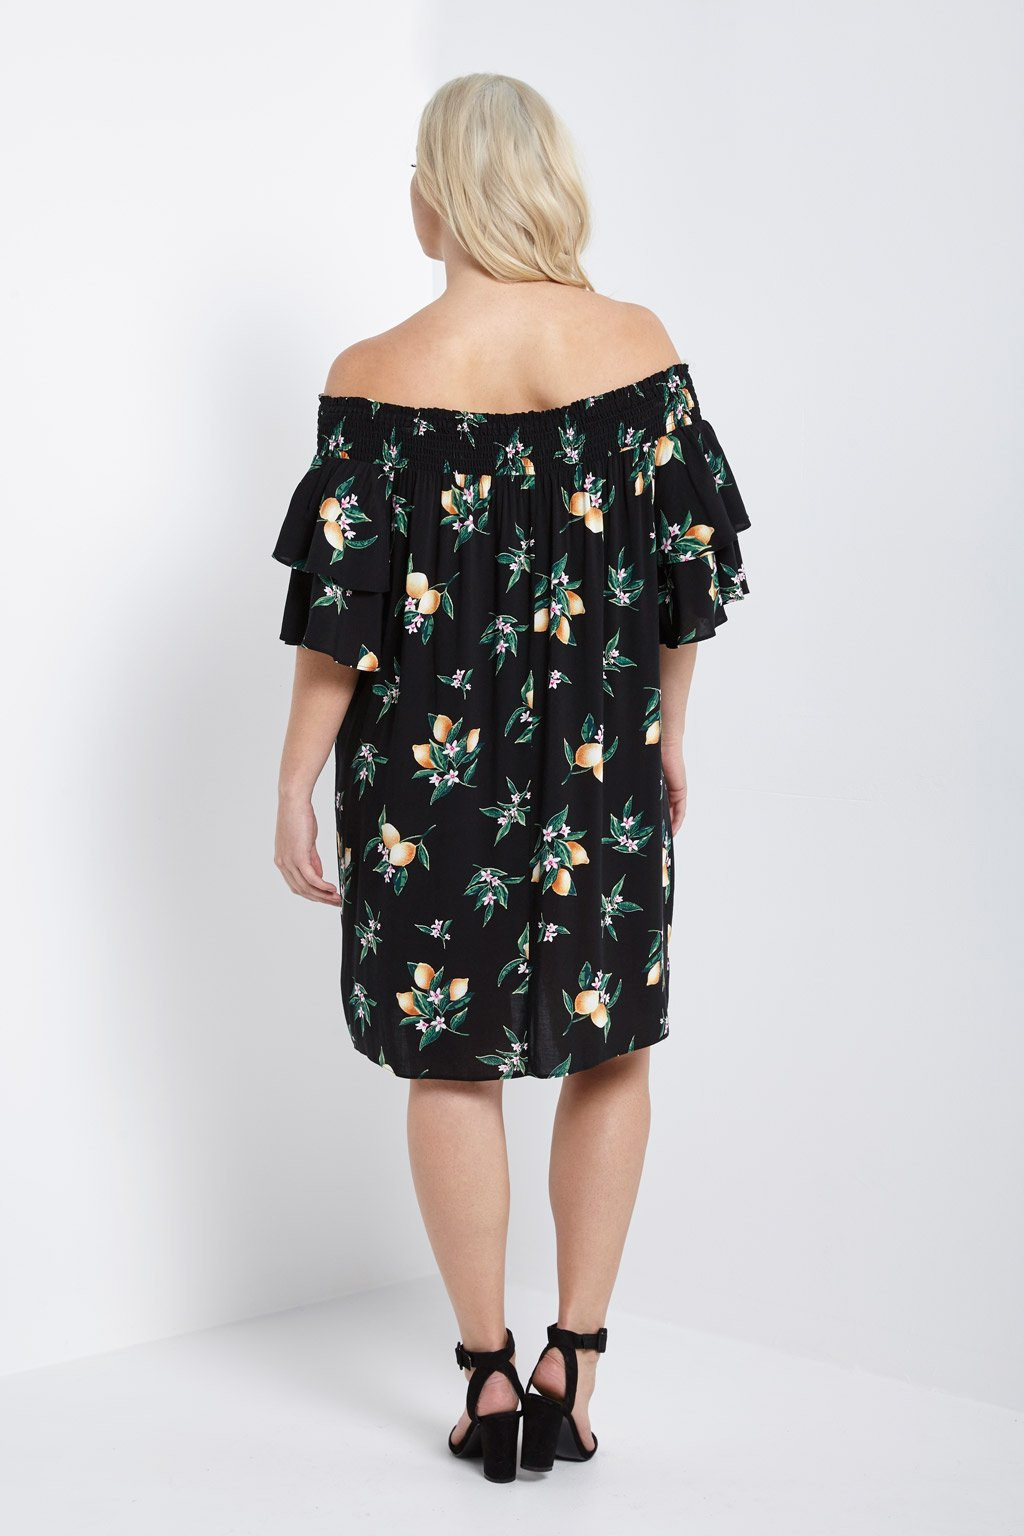 Poshsquare Plus Lemon Floral Off the Shoulder Dress Plus Size